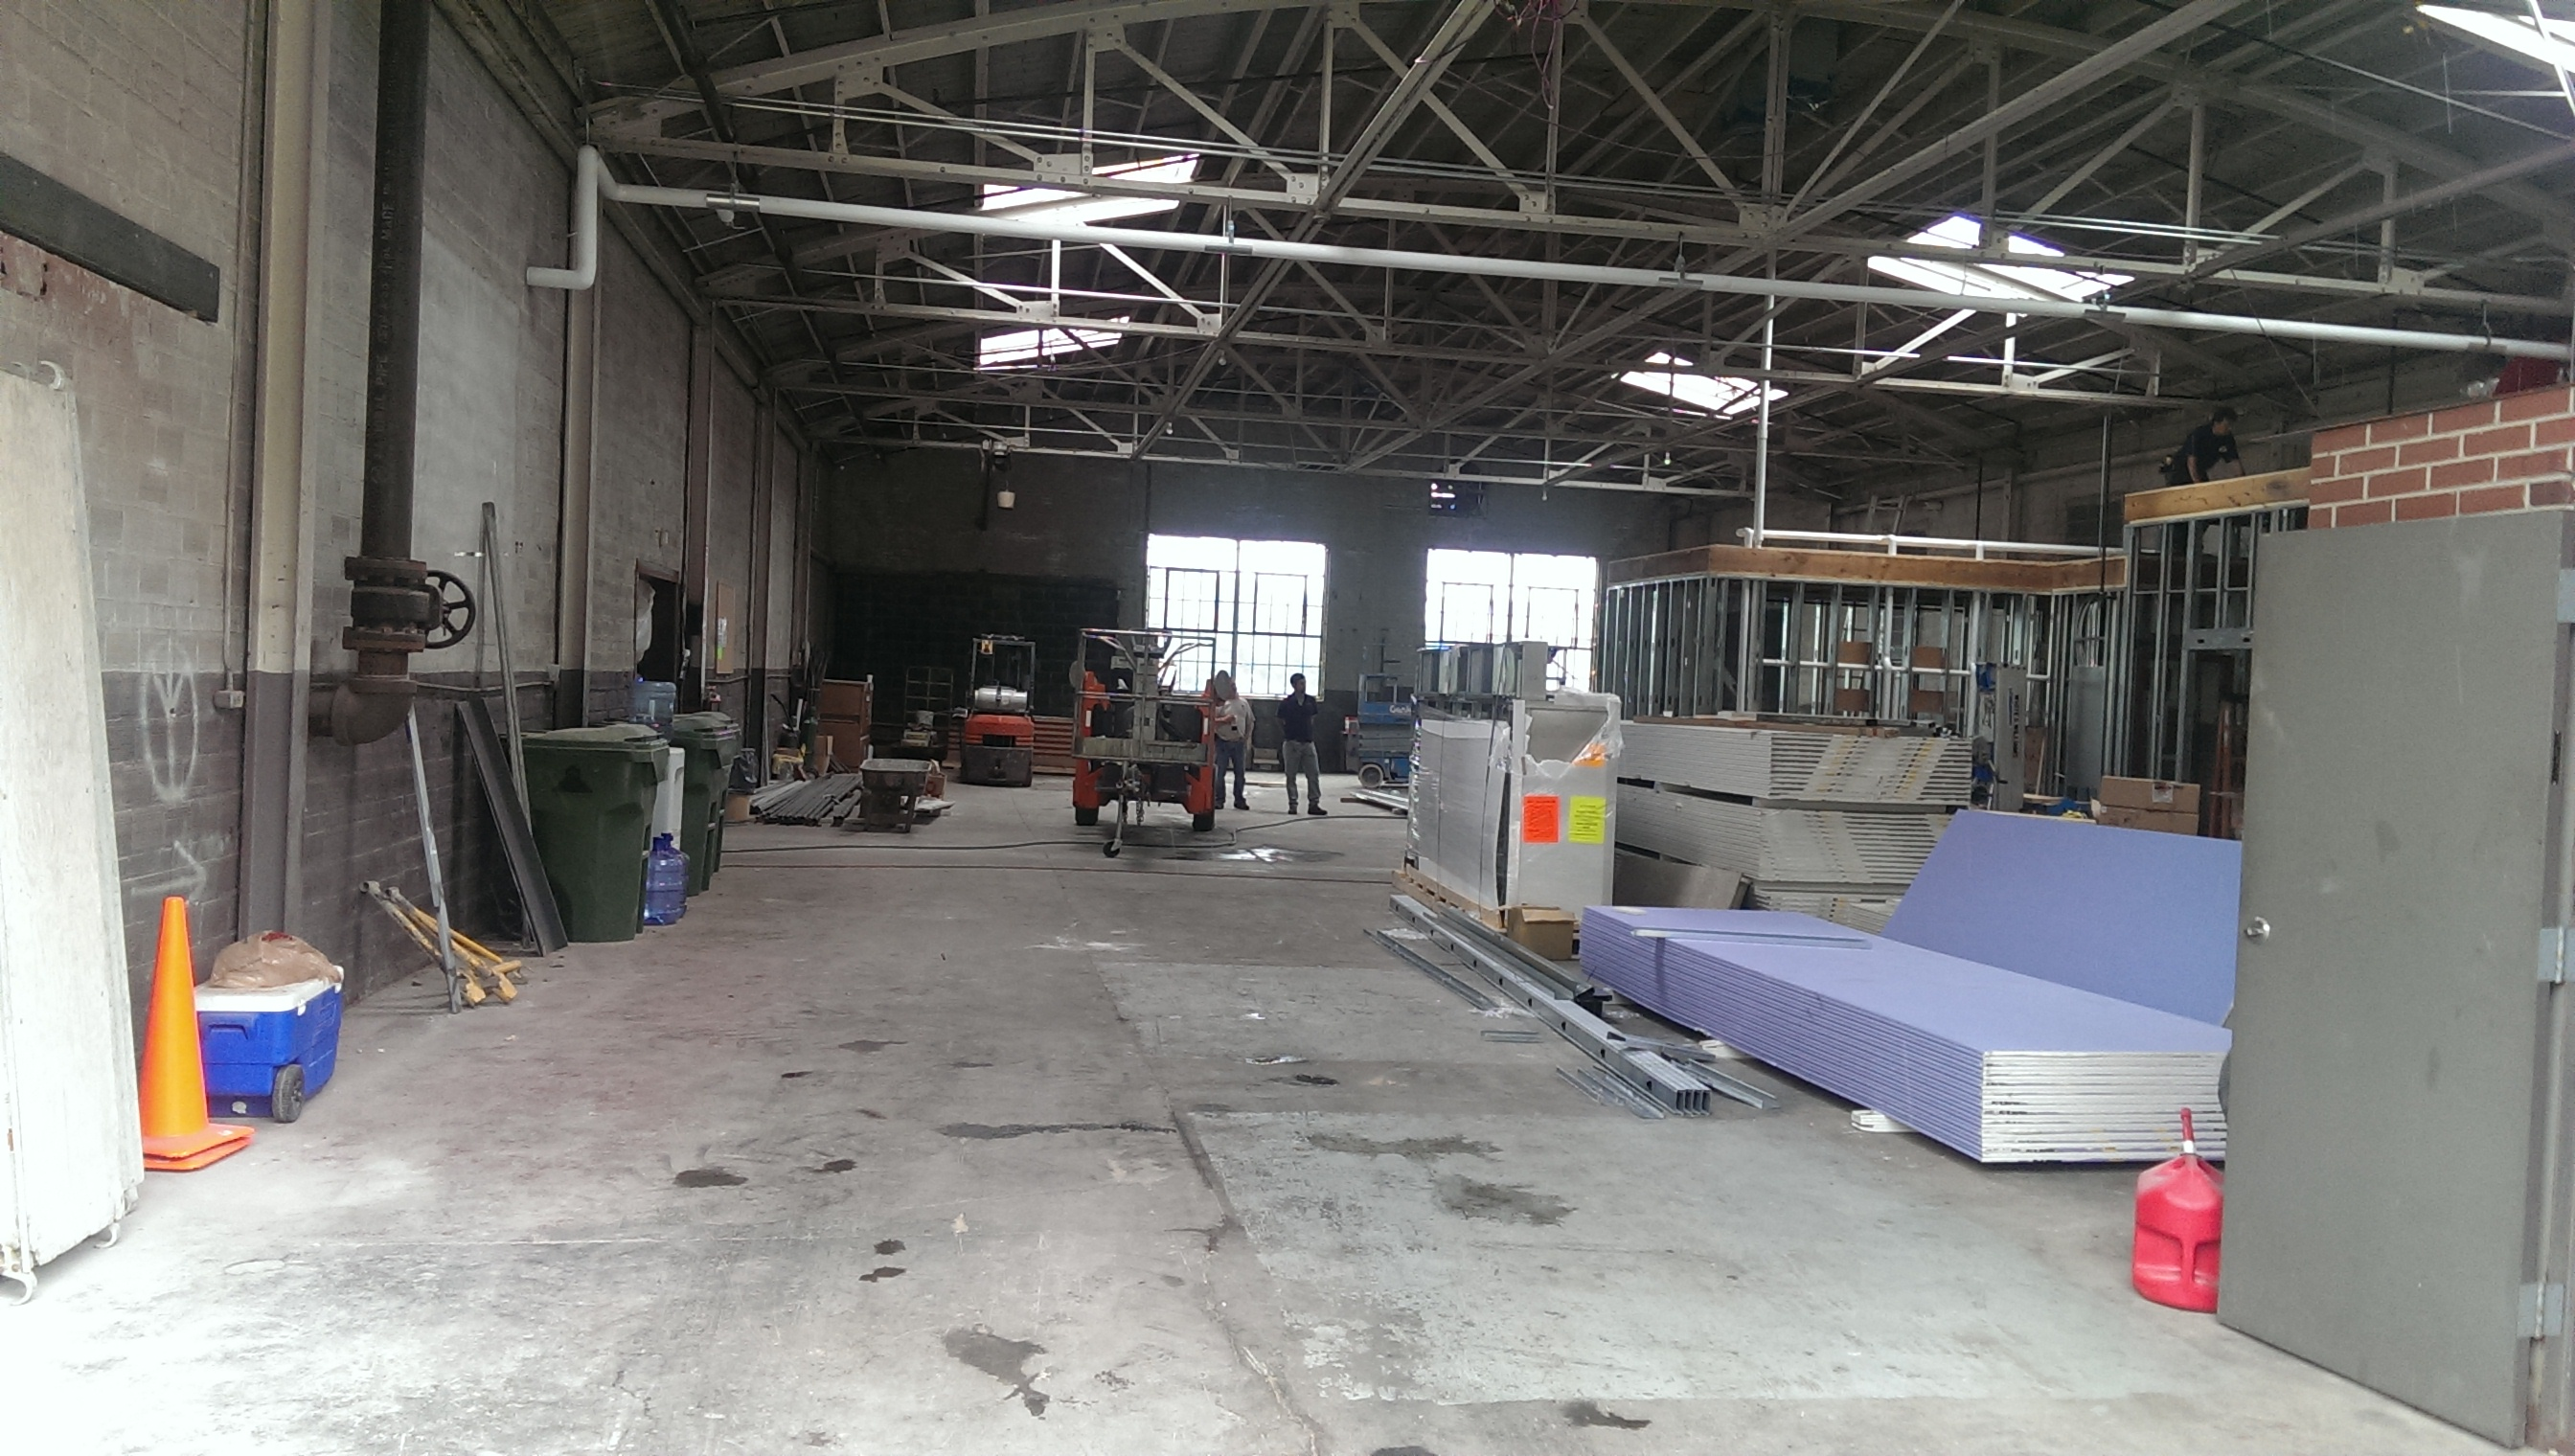 Brew-ED Beer News: More details of Catawba Brewing's plans for new brewery on Asheville's South Slope